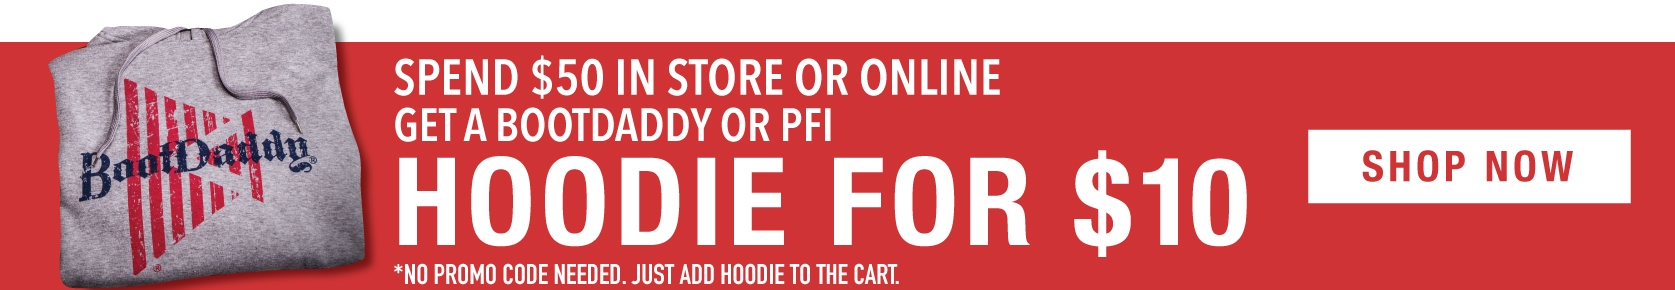 Spend $50 Get A BootDaddy Hoodie For $10